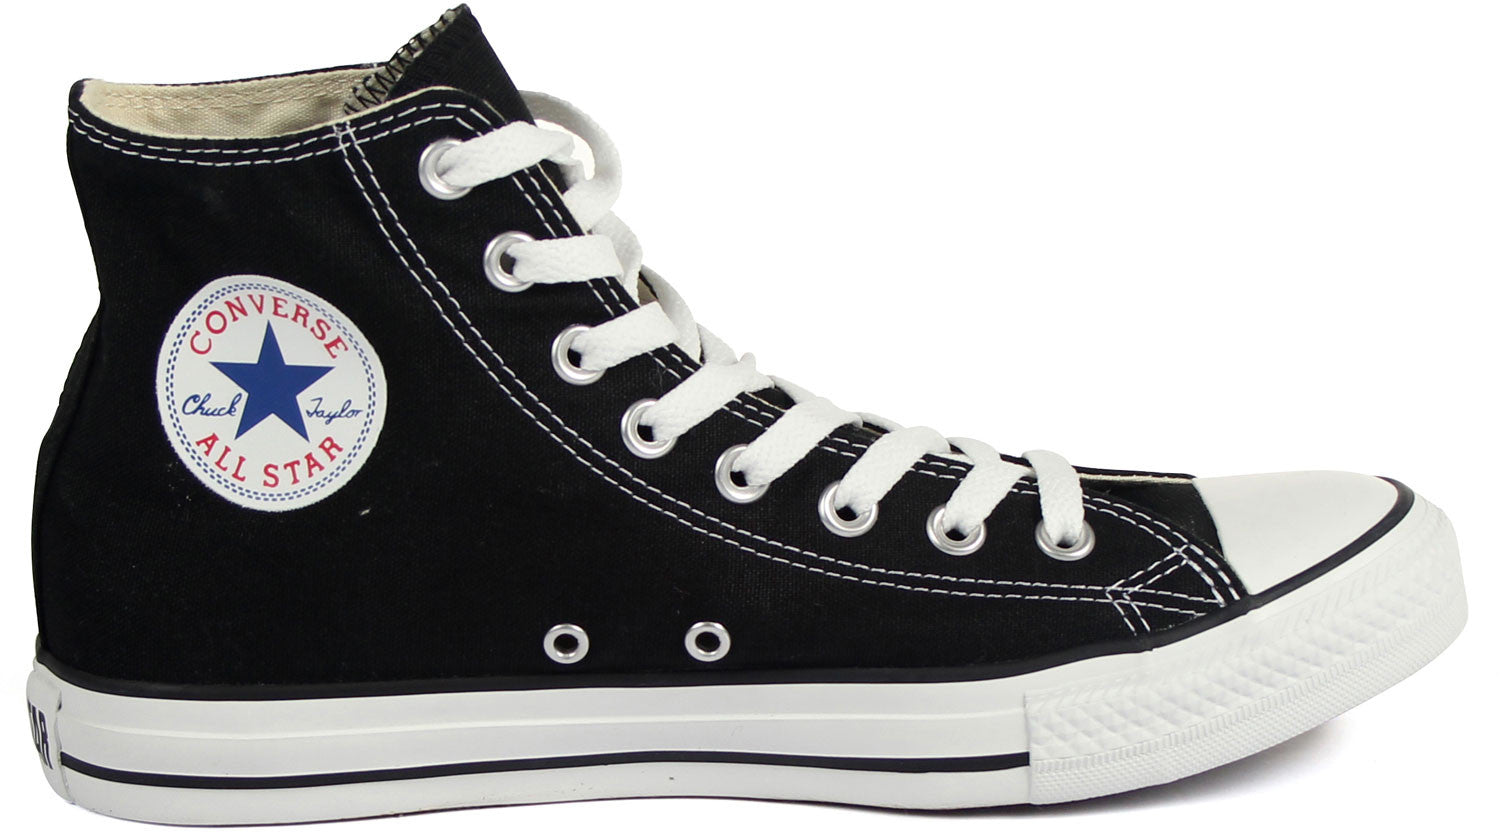 All shoes star